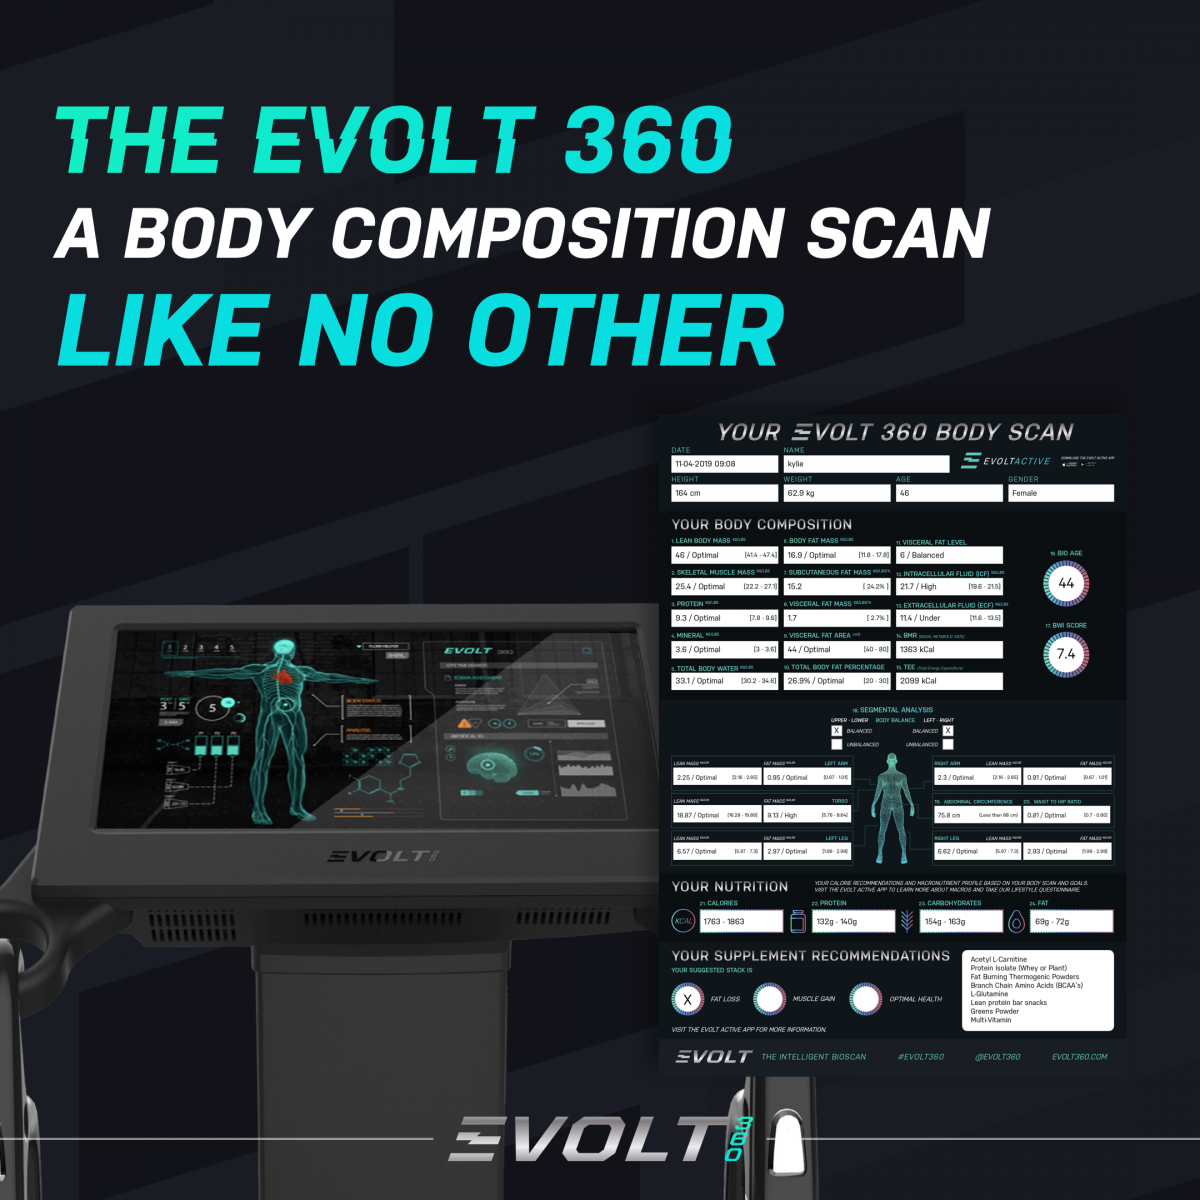 Evolt 360 Body Scanner Image